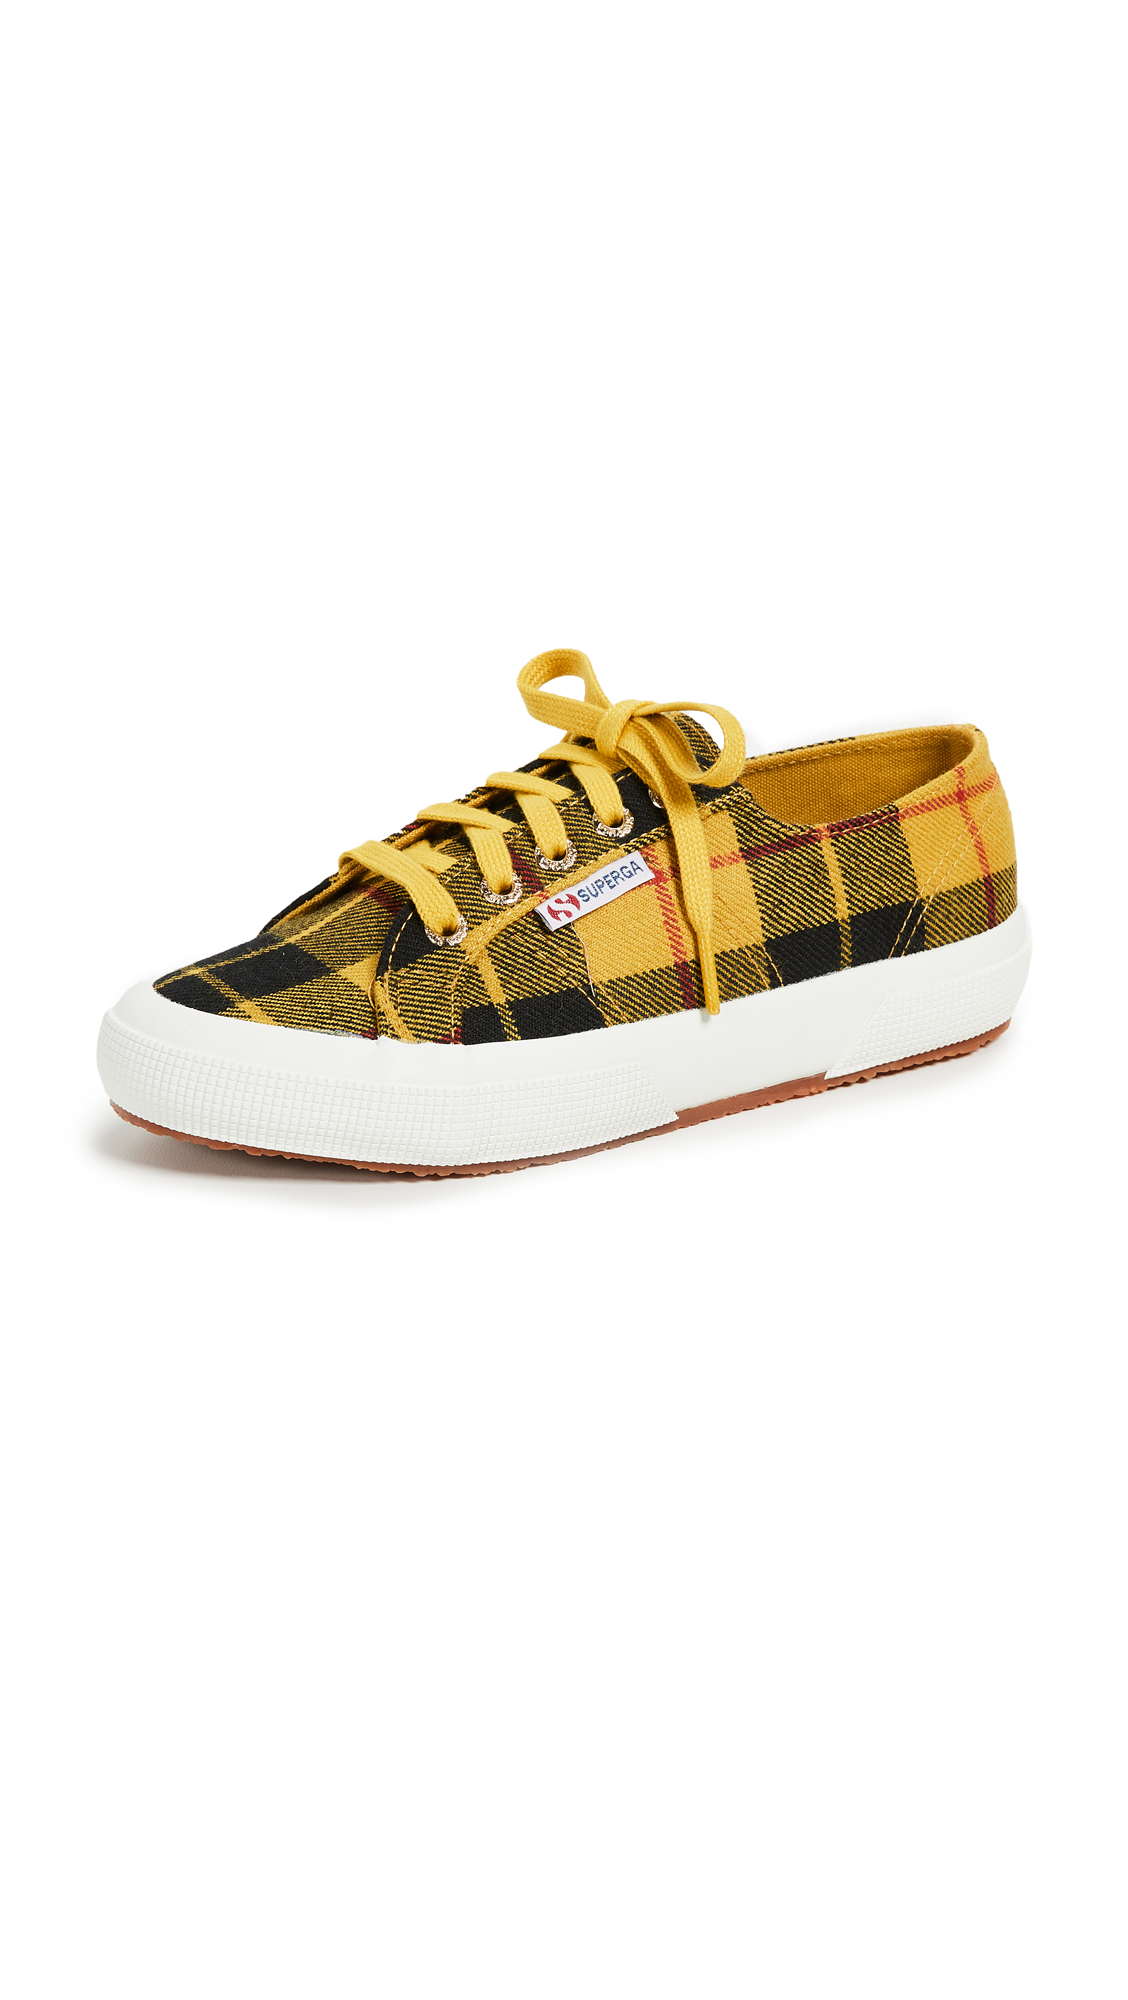 Superga 2750 Tartan Lace Up Sneakers - Yellow Plaid